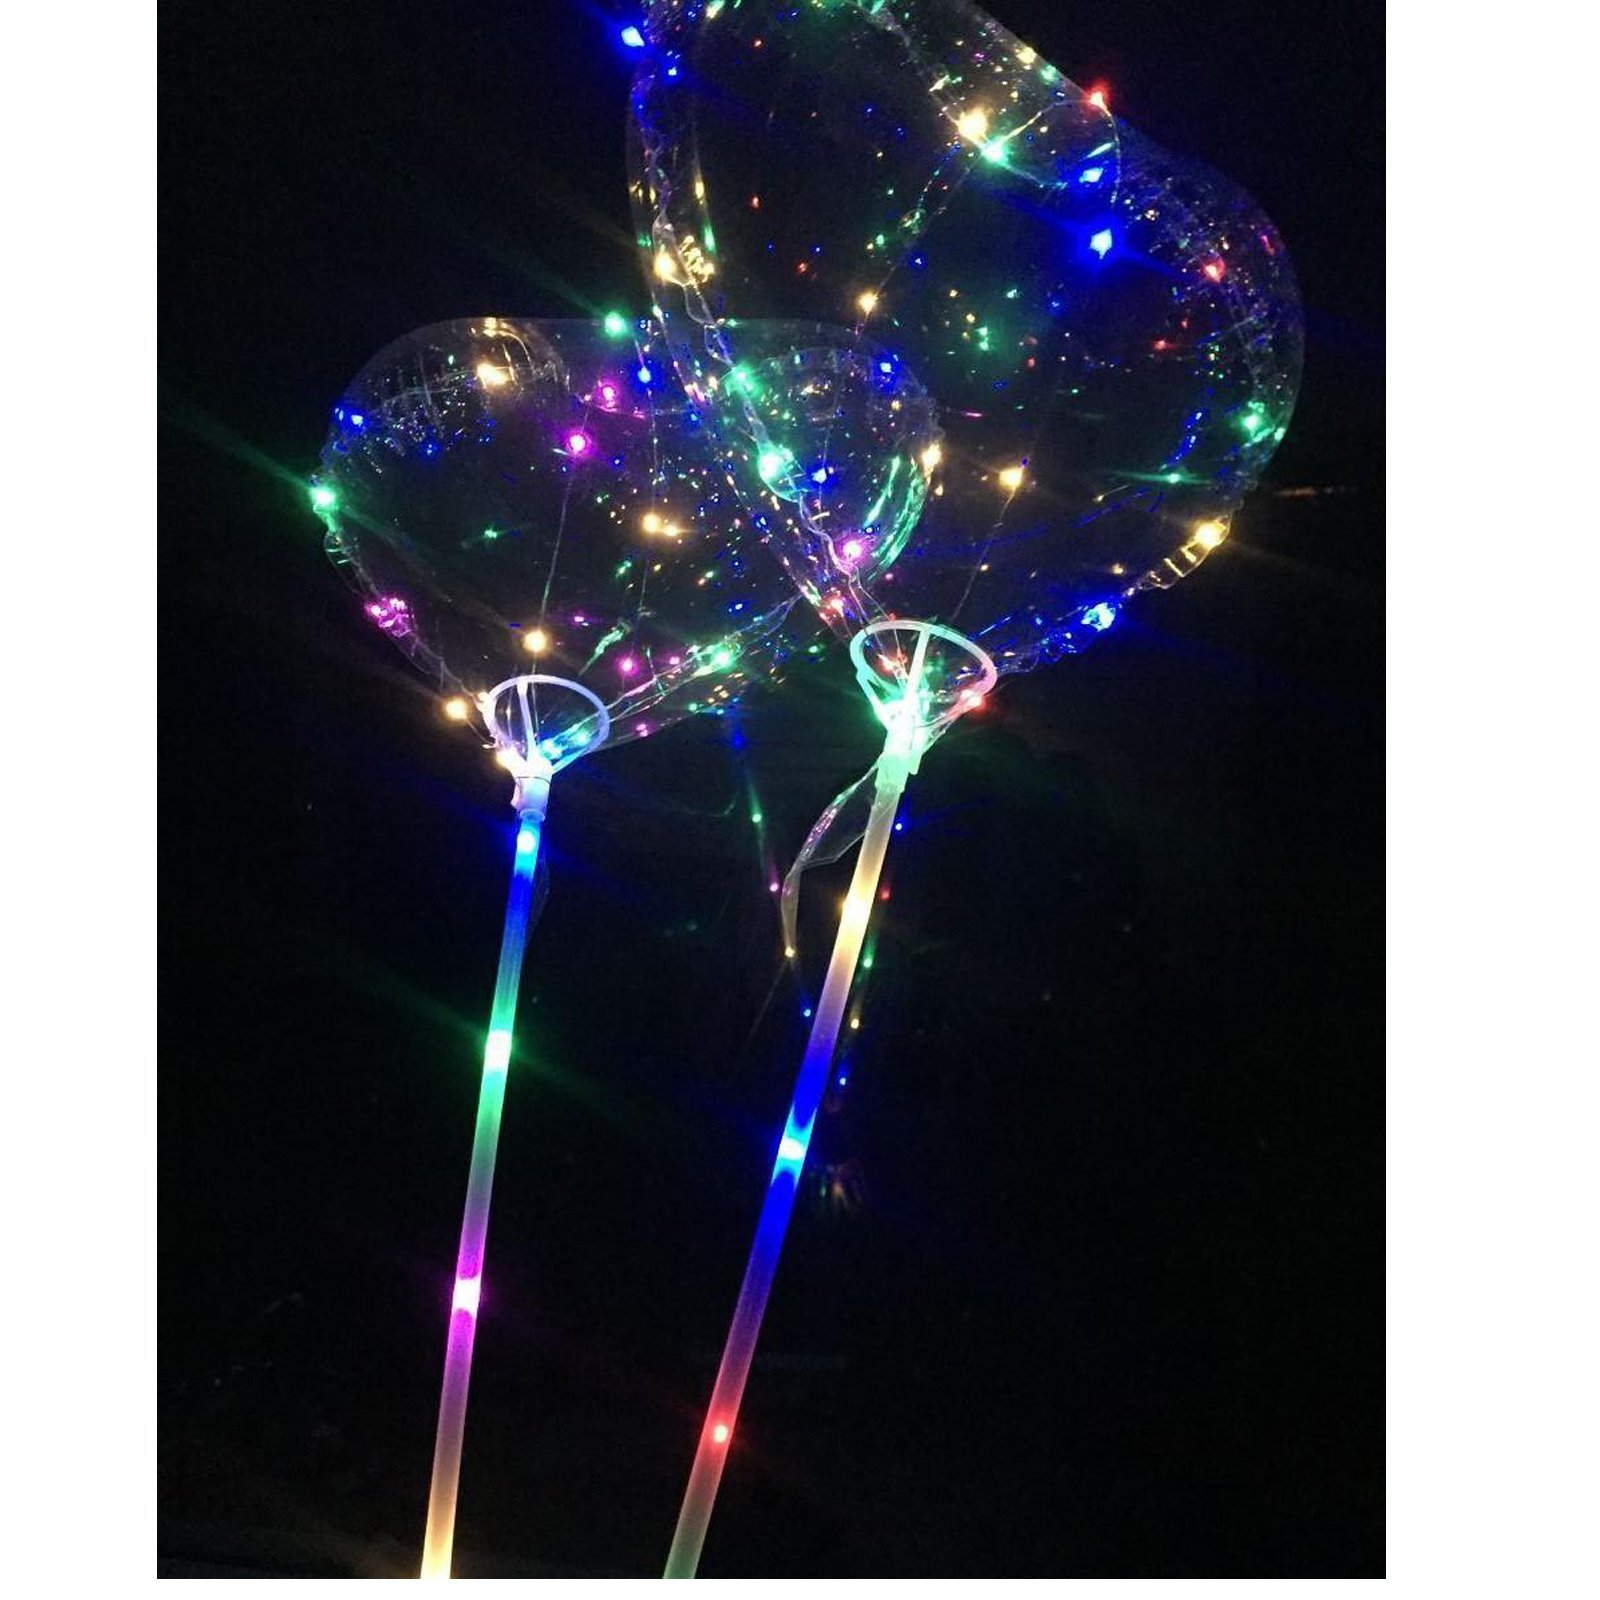 LED Light Up Heart Shape Balloons, Reusable Double Layer Balloon inside a Balloon with support cup and stick, Perfect for Birthday,Wedding, Holiday, Special Occasion and Event Decoration (50) by Capital Wireless